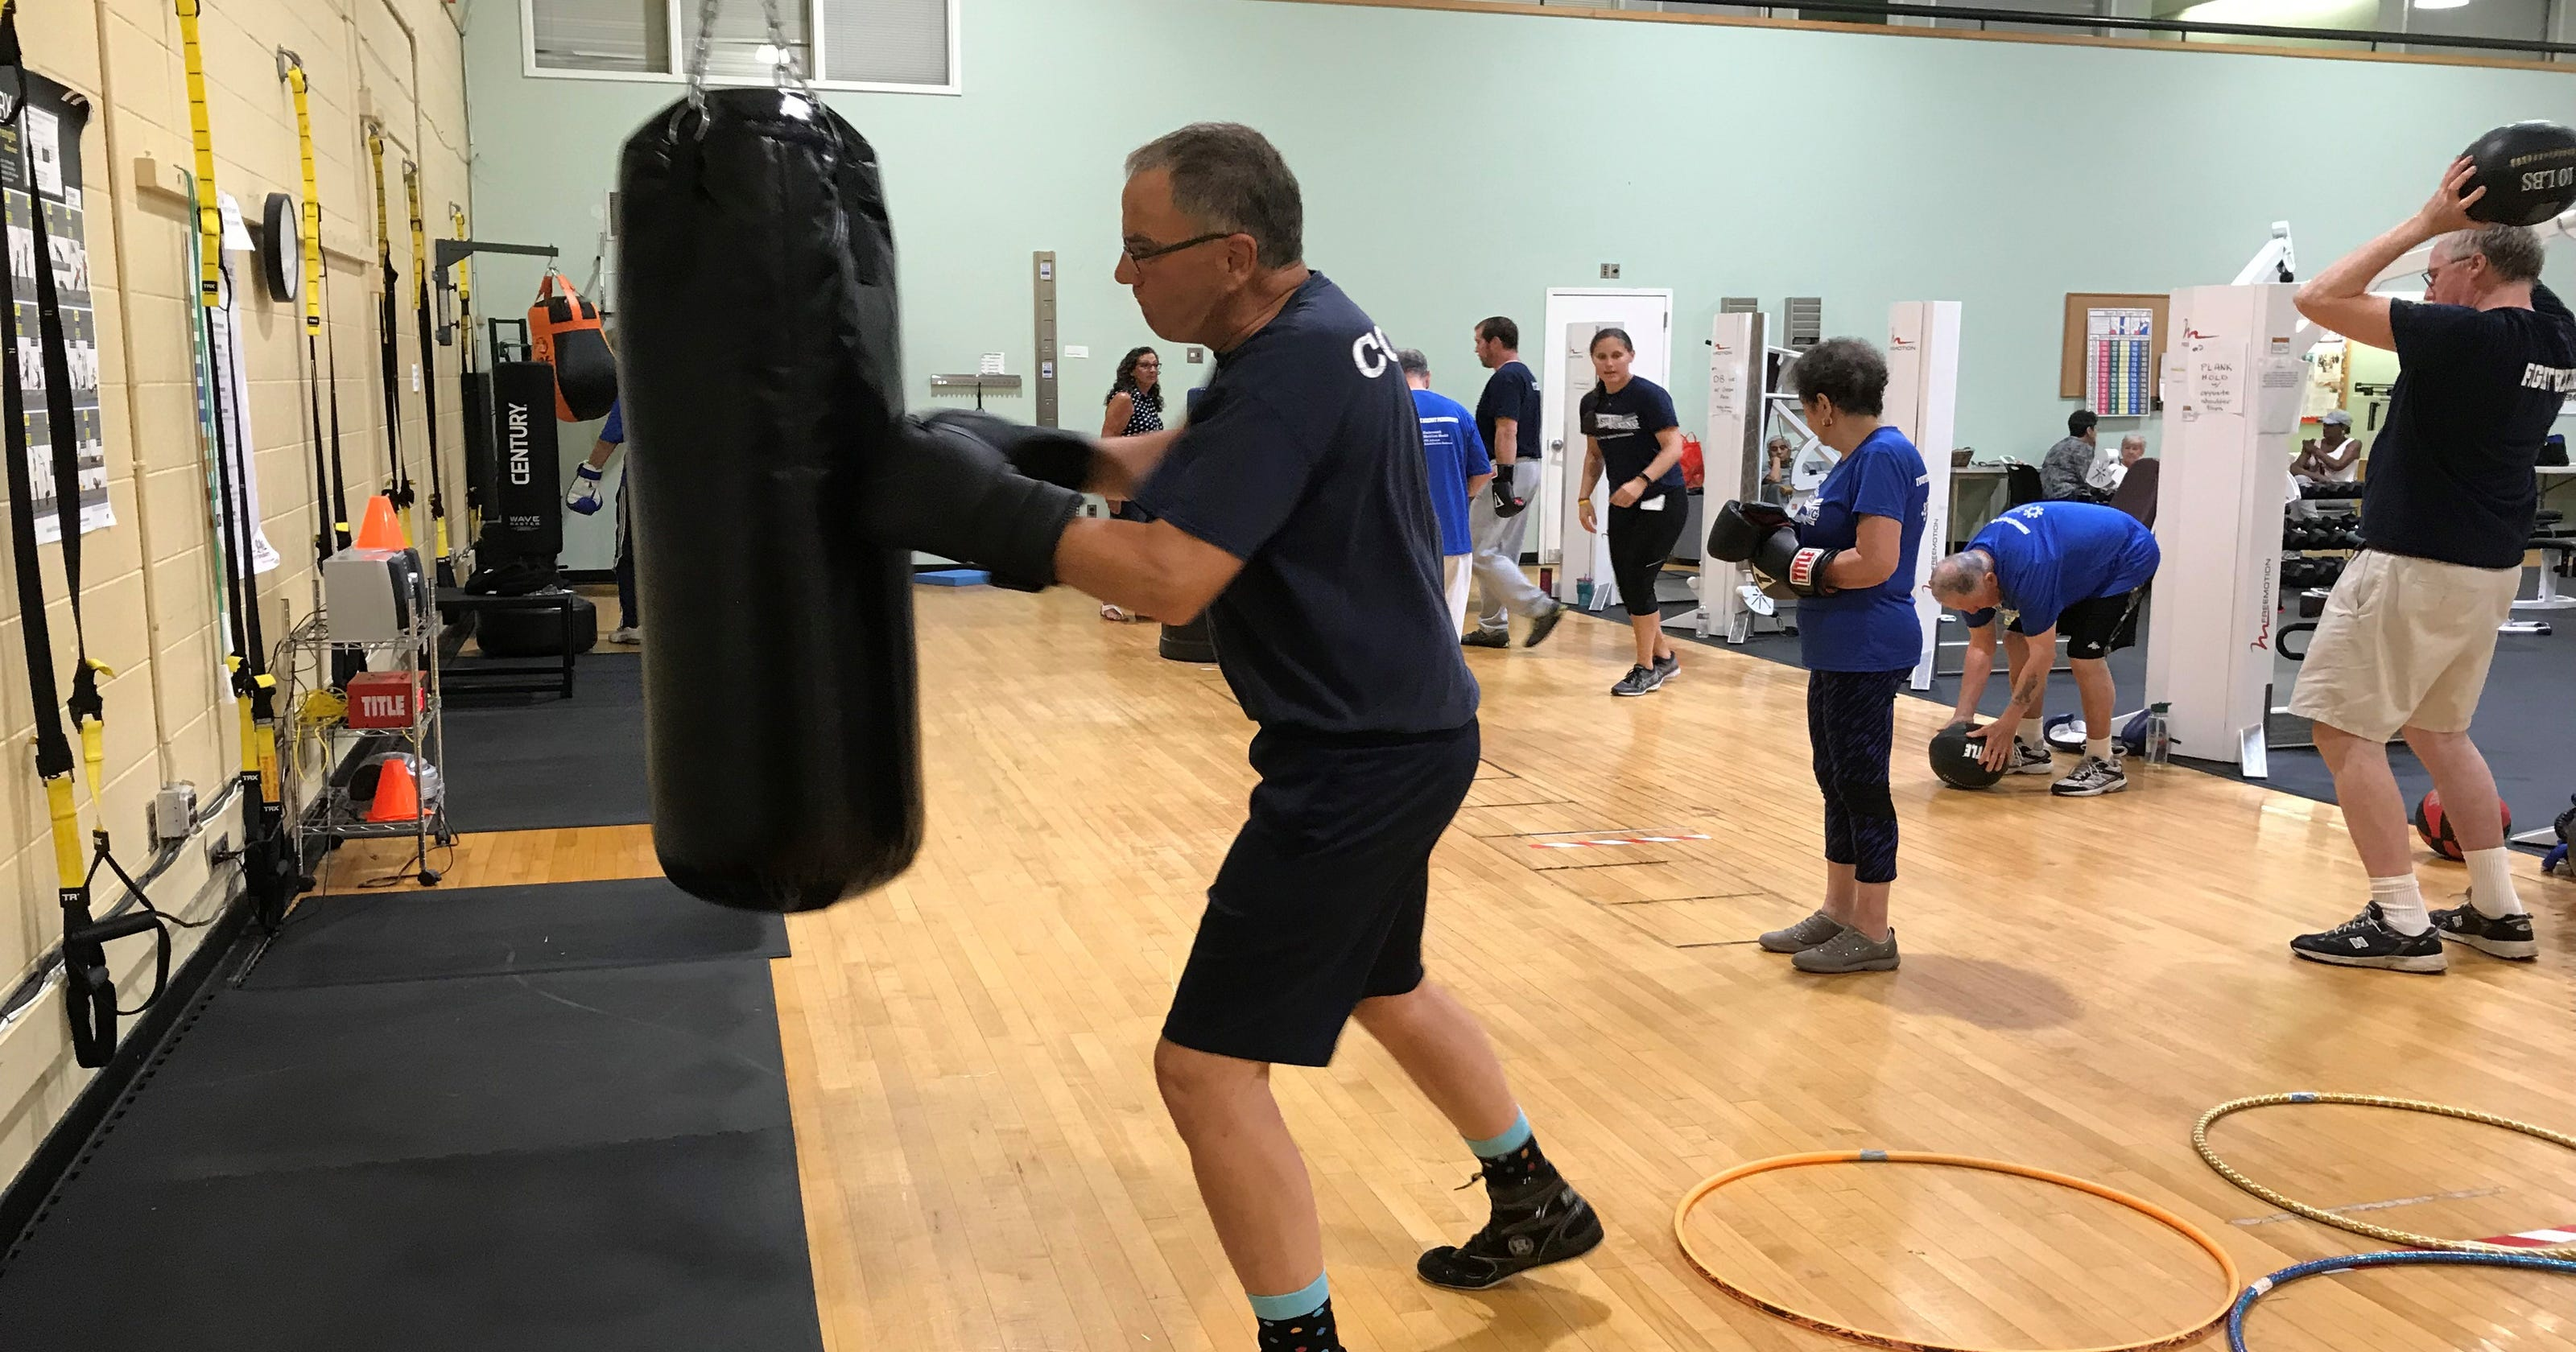 Rock Steady Boxing takes a punch at Parkinson's disease during